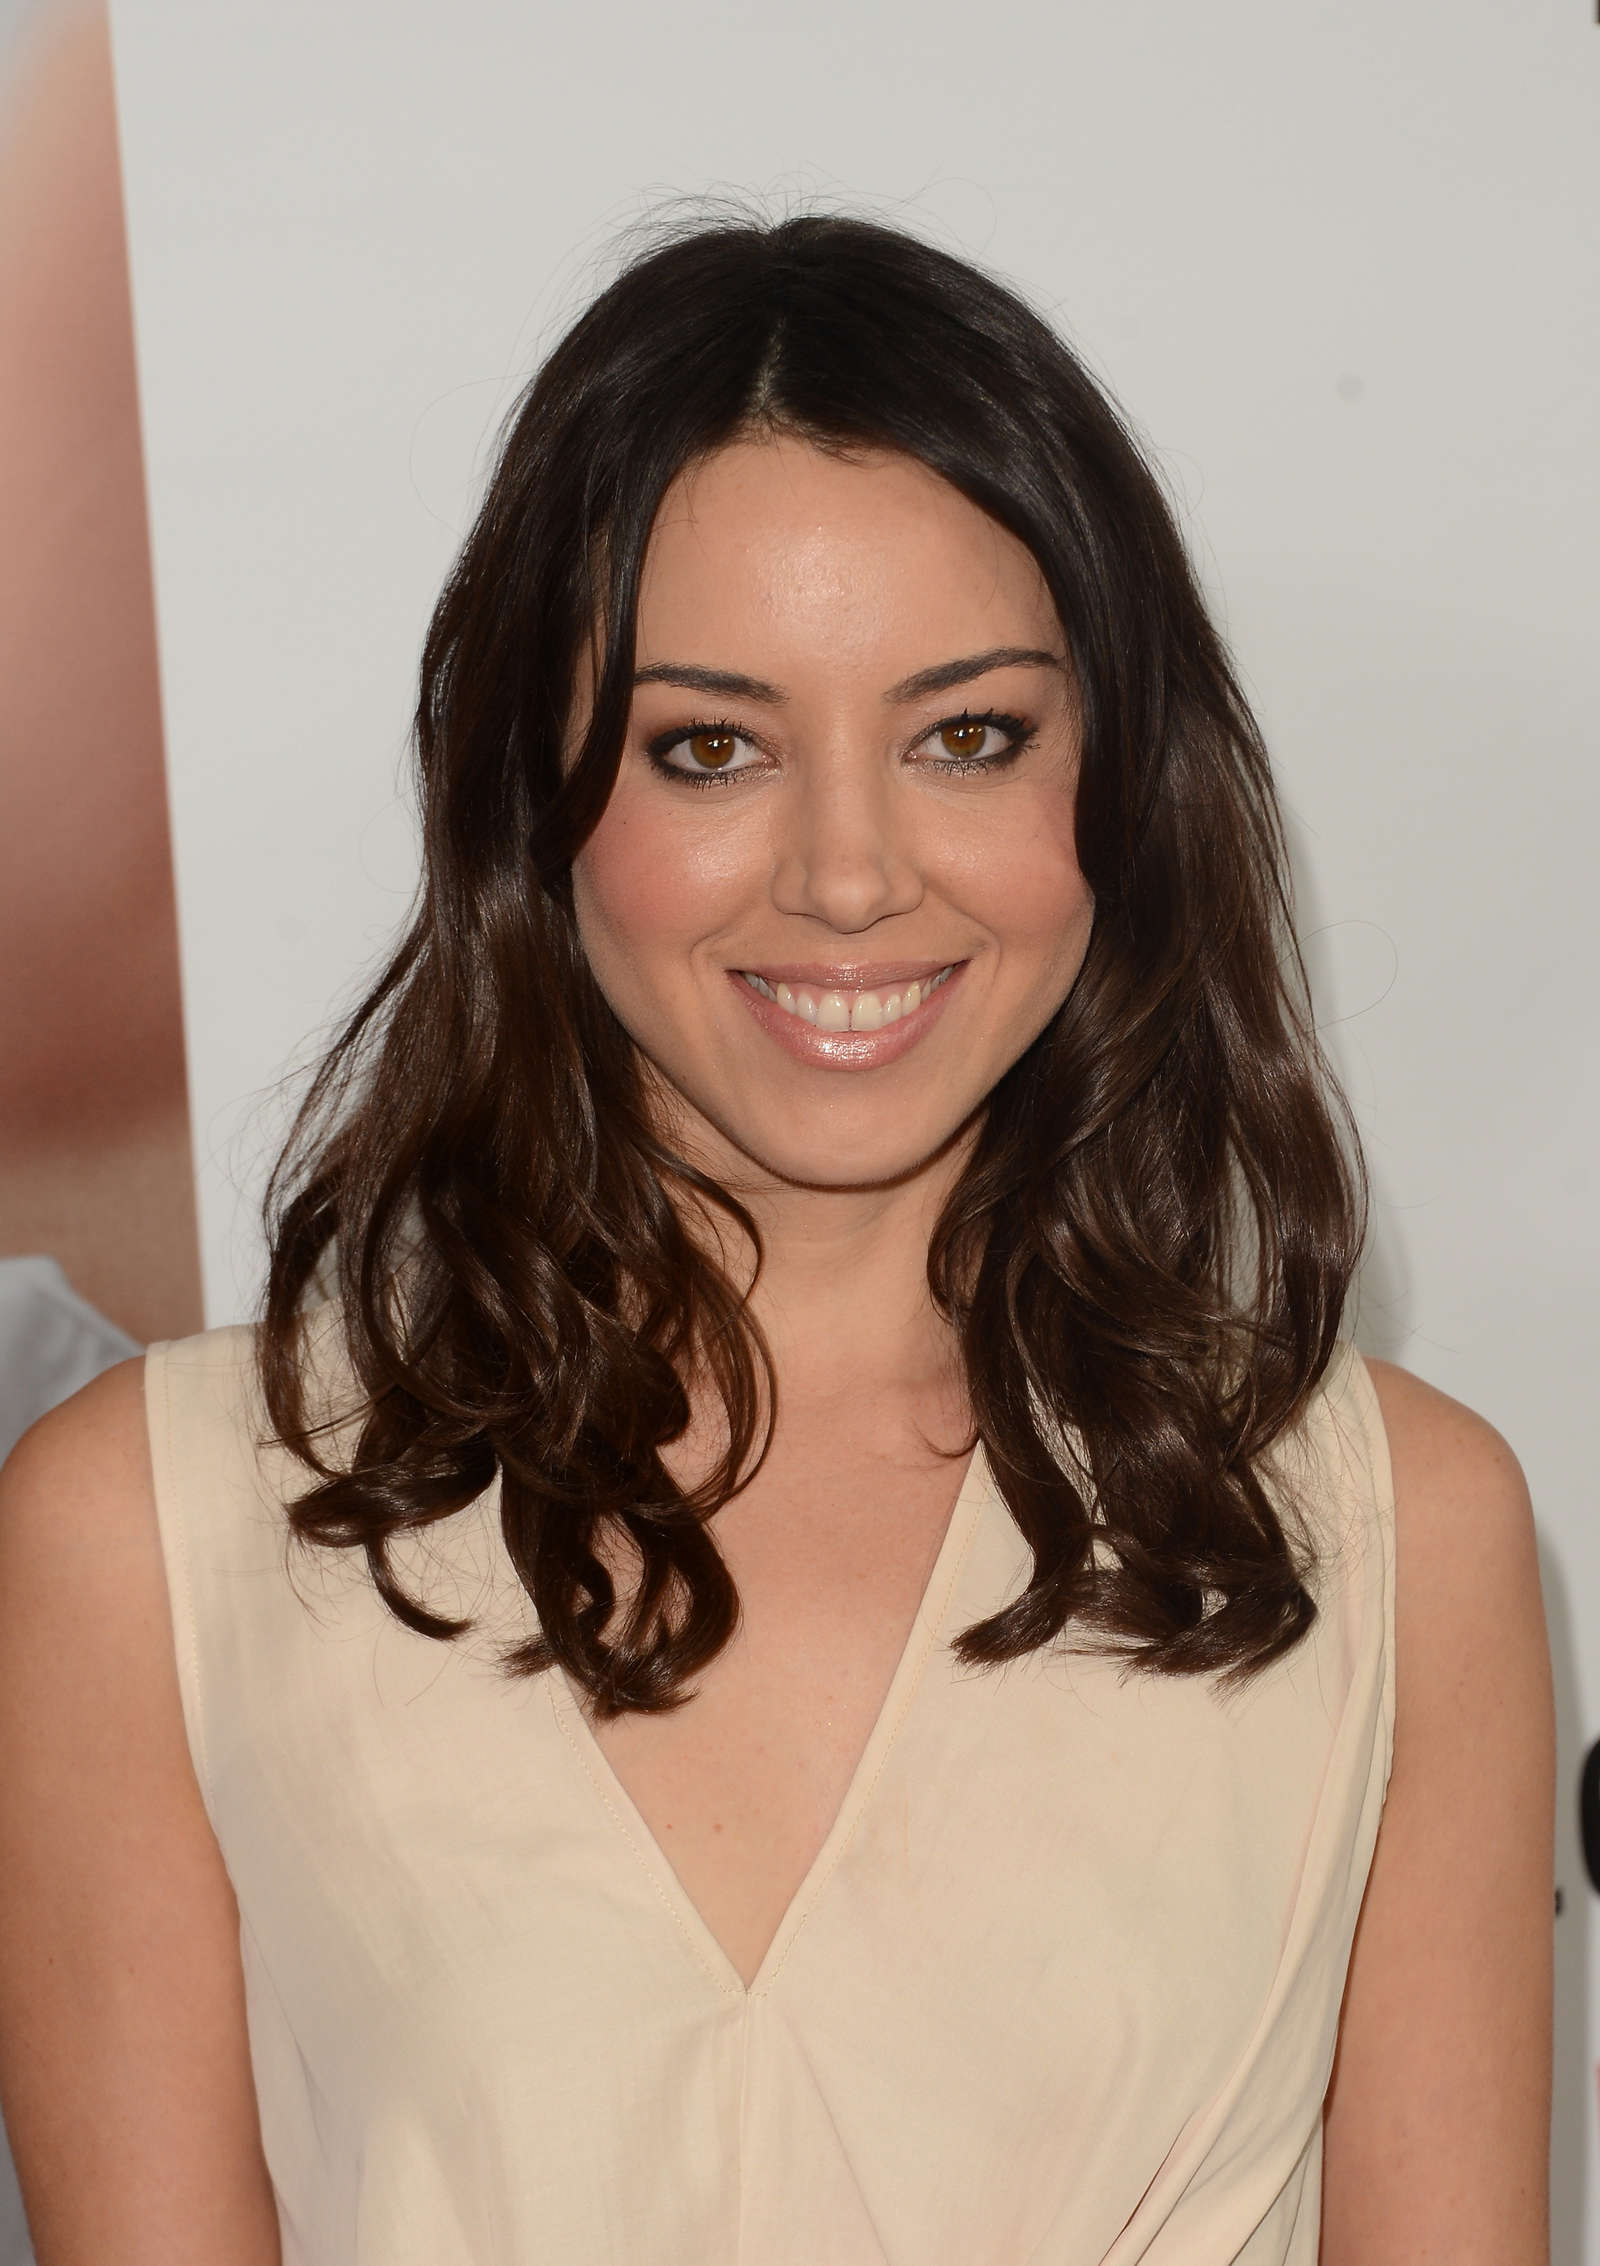 image Aubrey plaza ned rifle